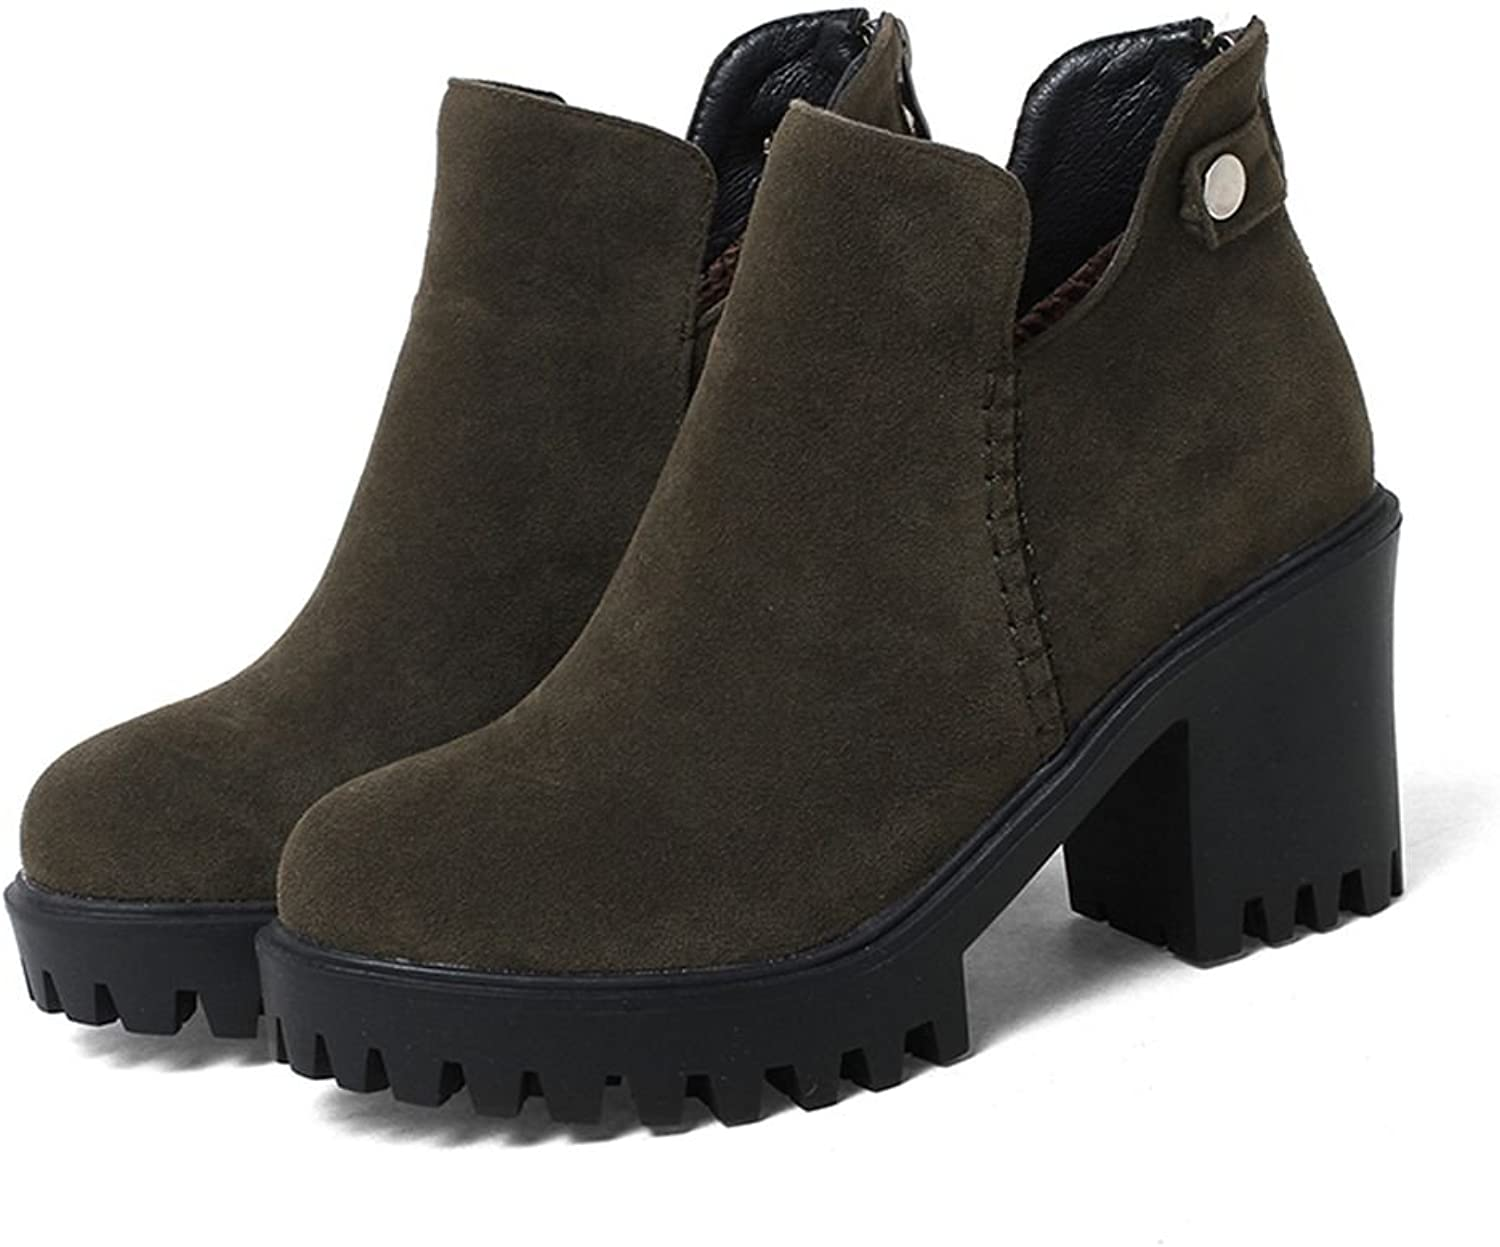 Kaloosh Women's High Heels Faux Suede Chuncy Heel Martens shoes British Style Round Toe Boots